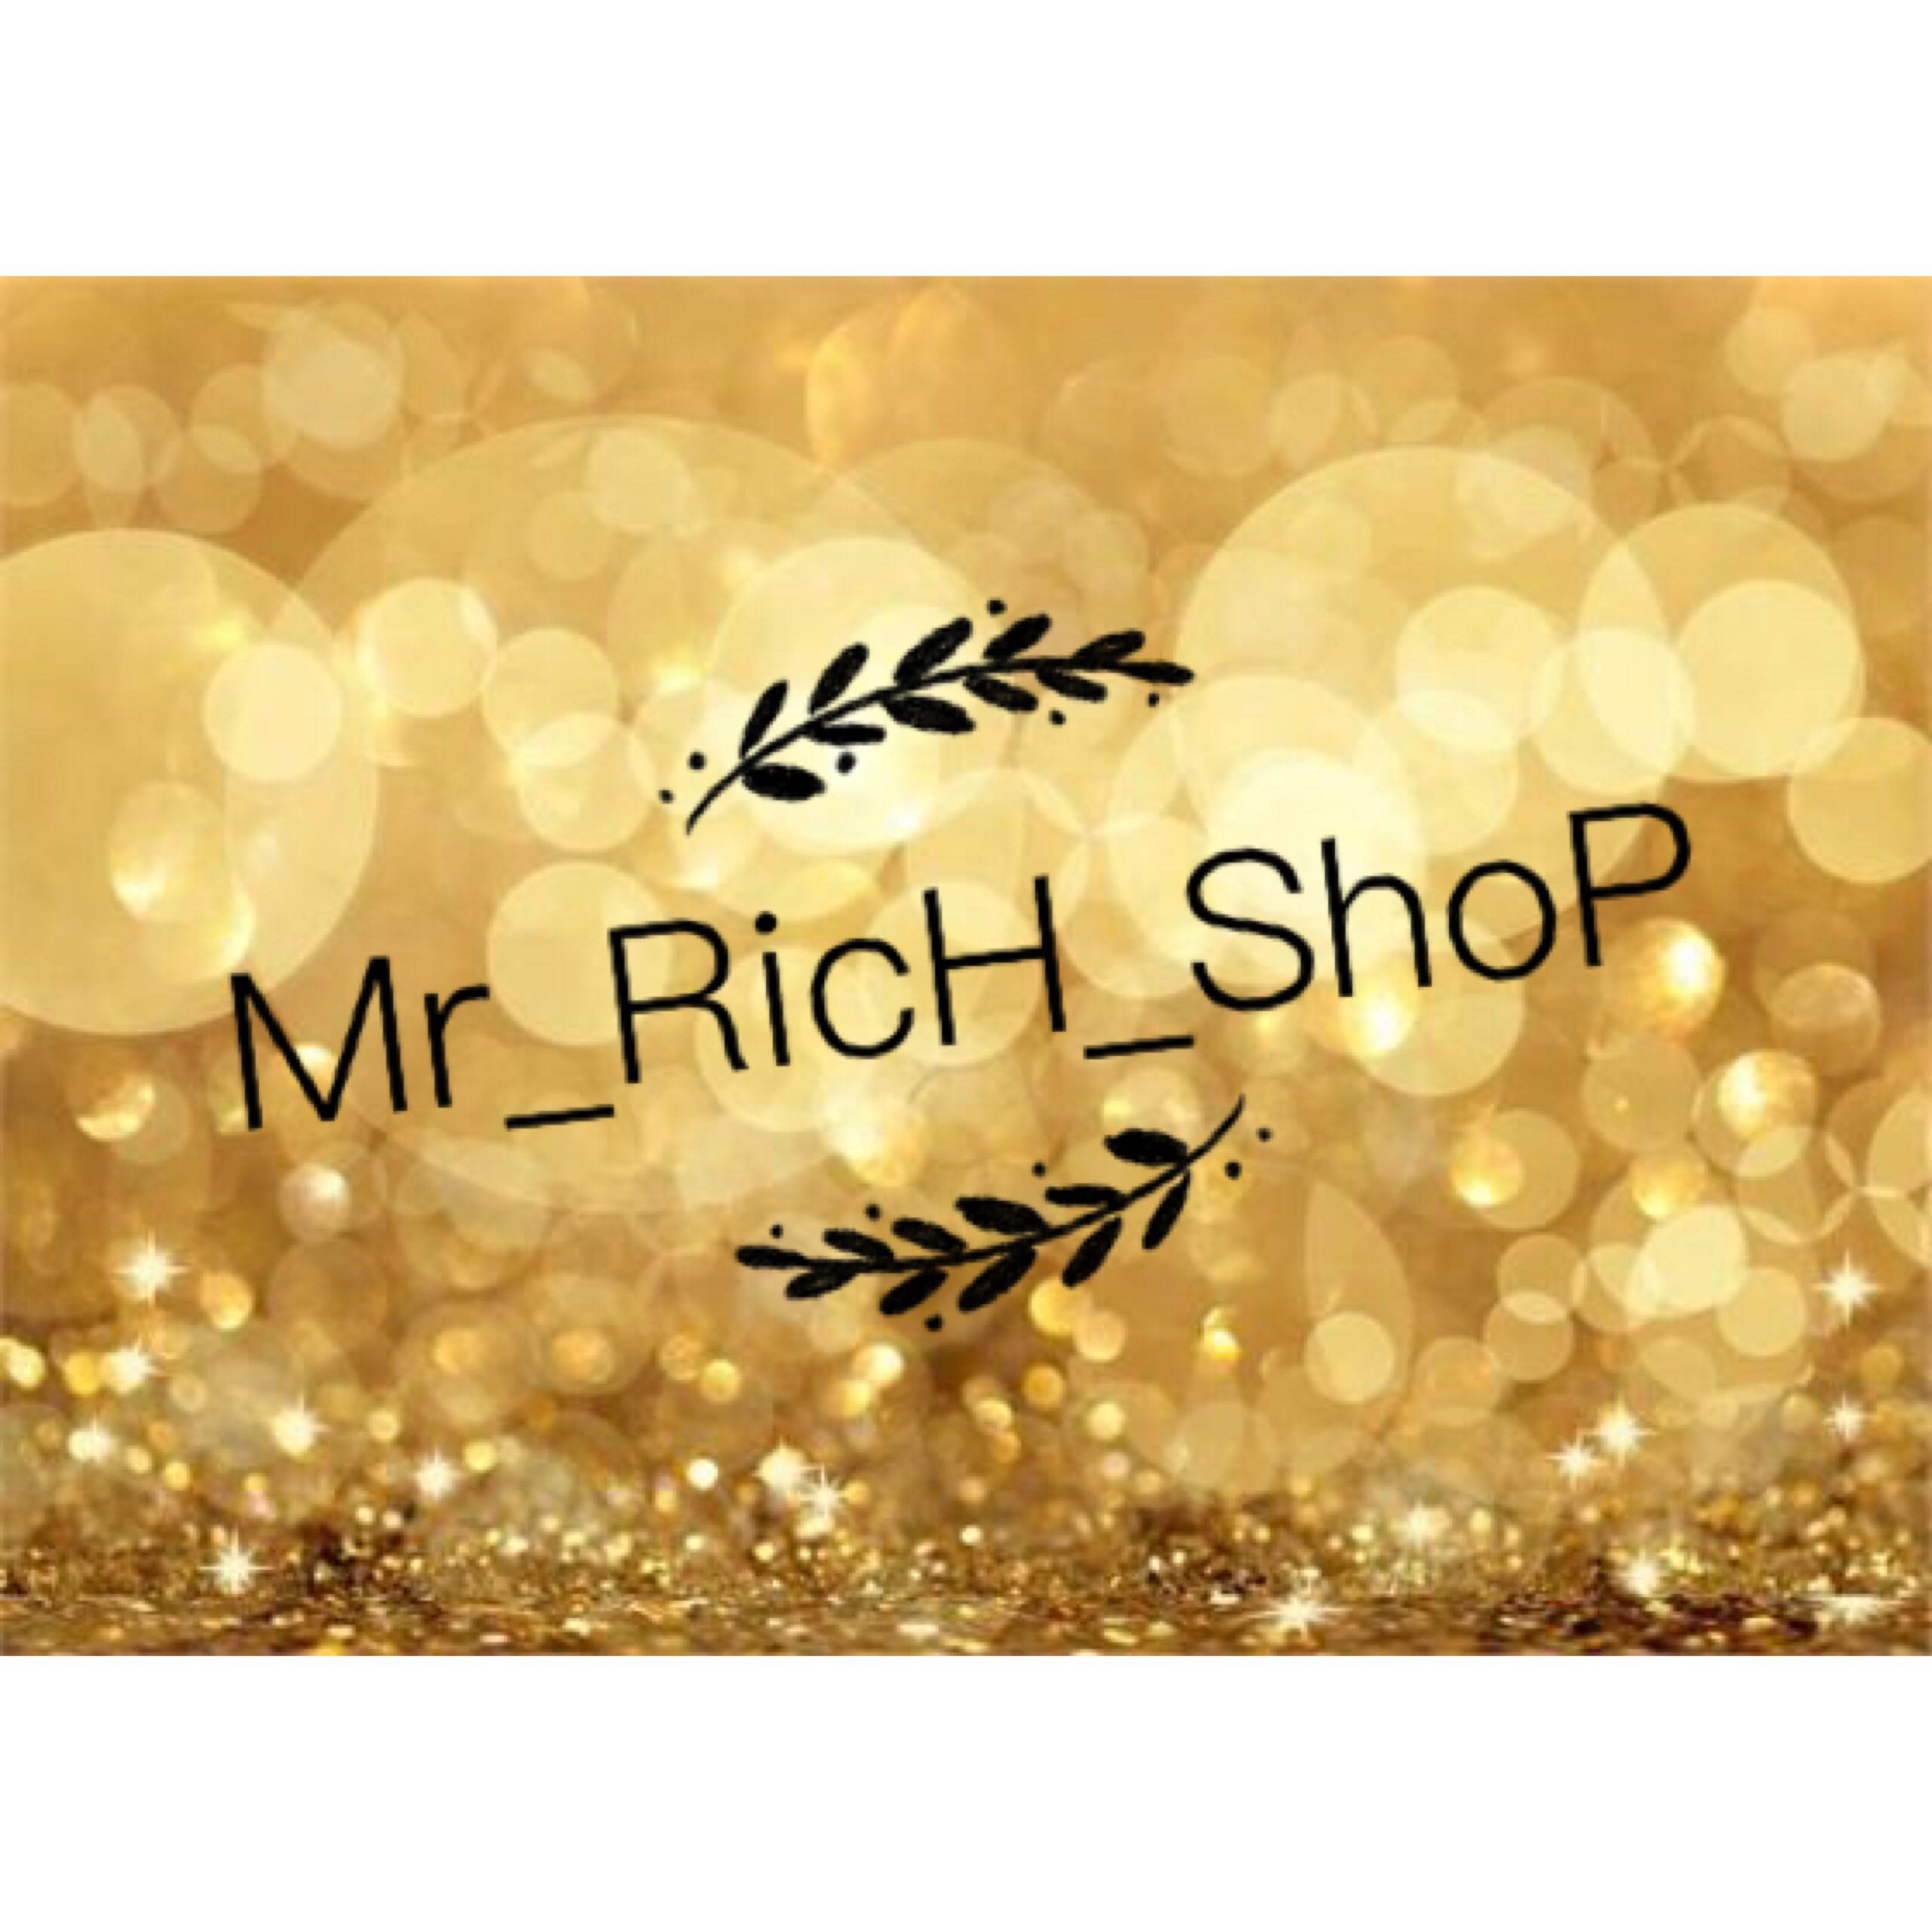 mr_rich_shop